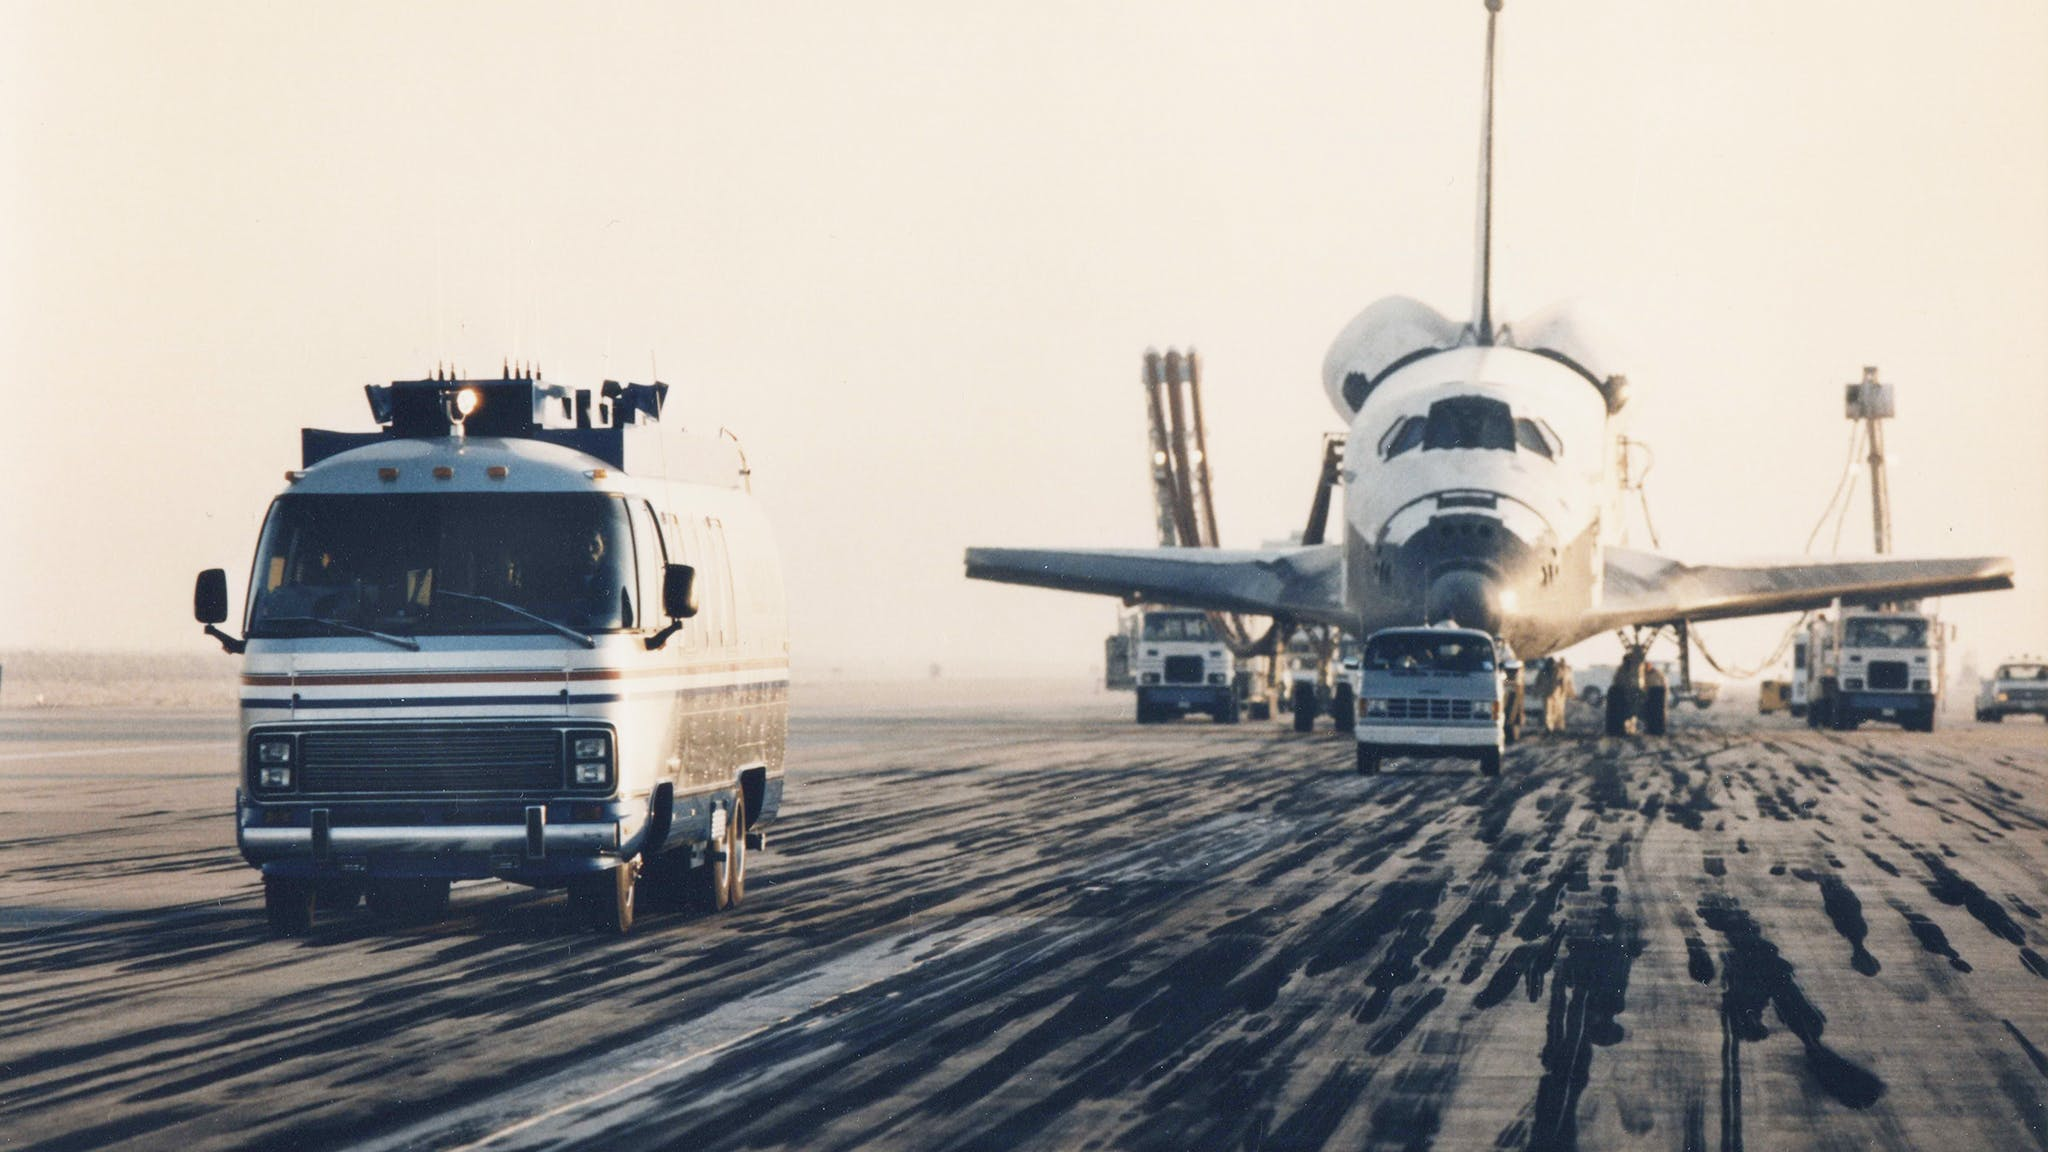 Airstream Astrovan NASA Space Shuttle